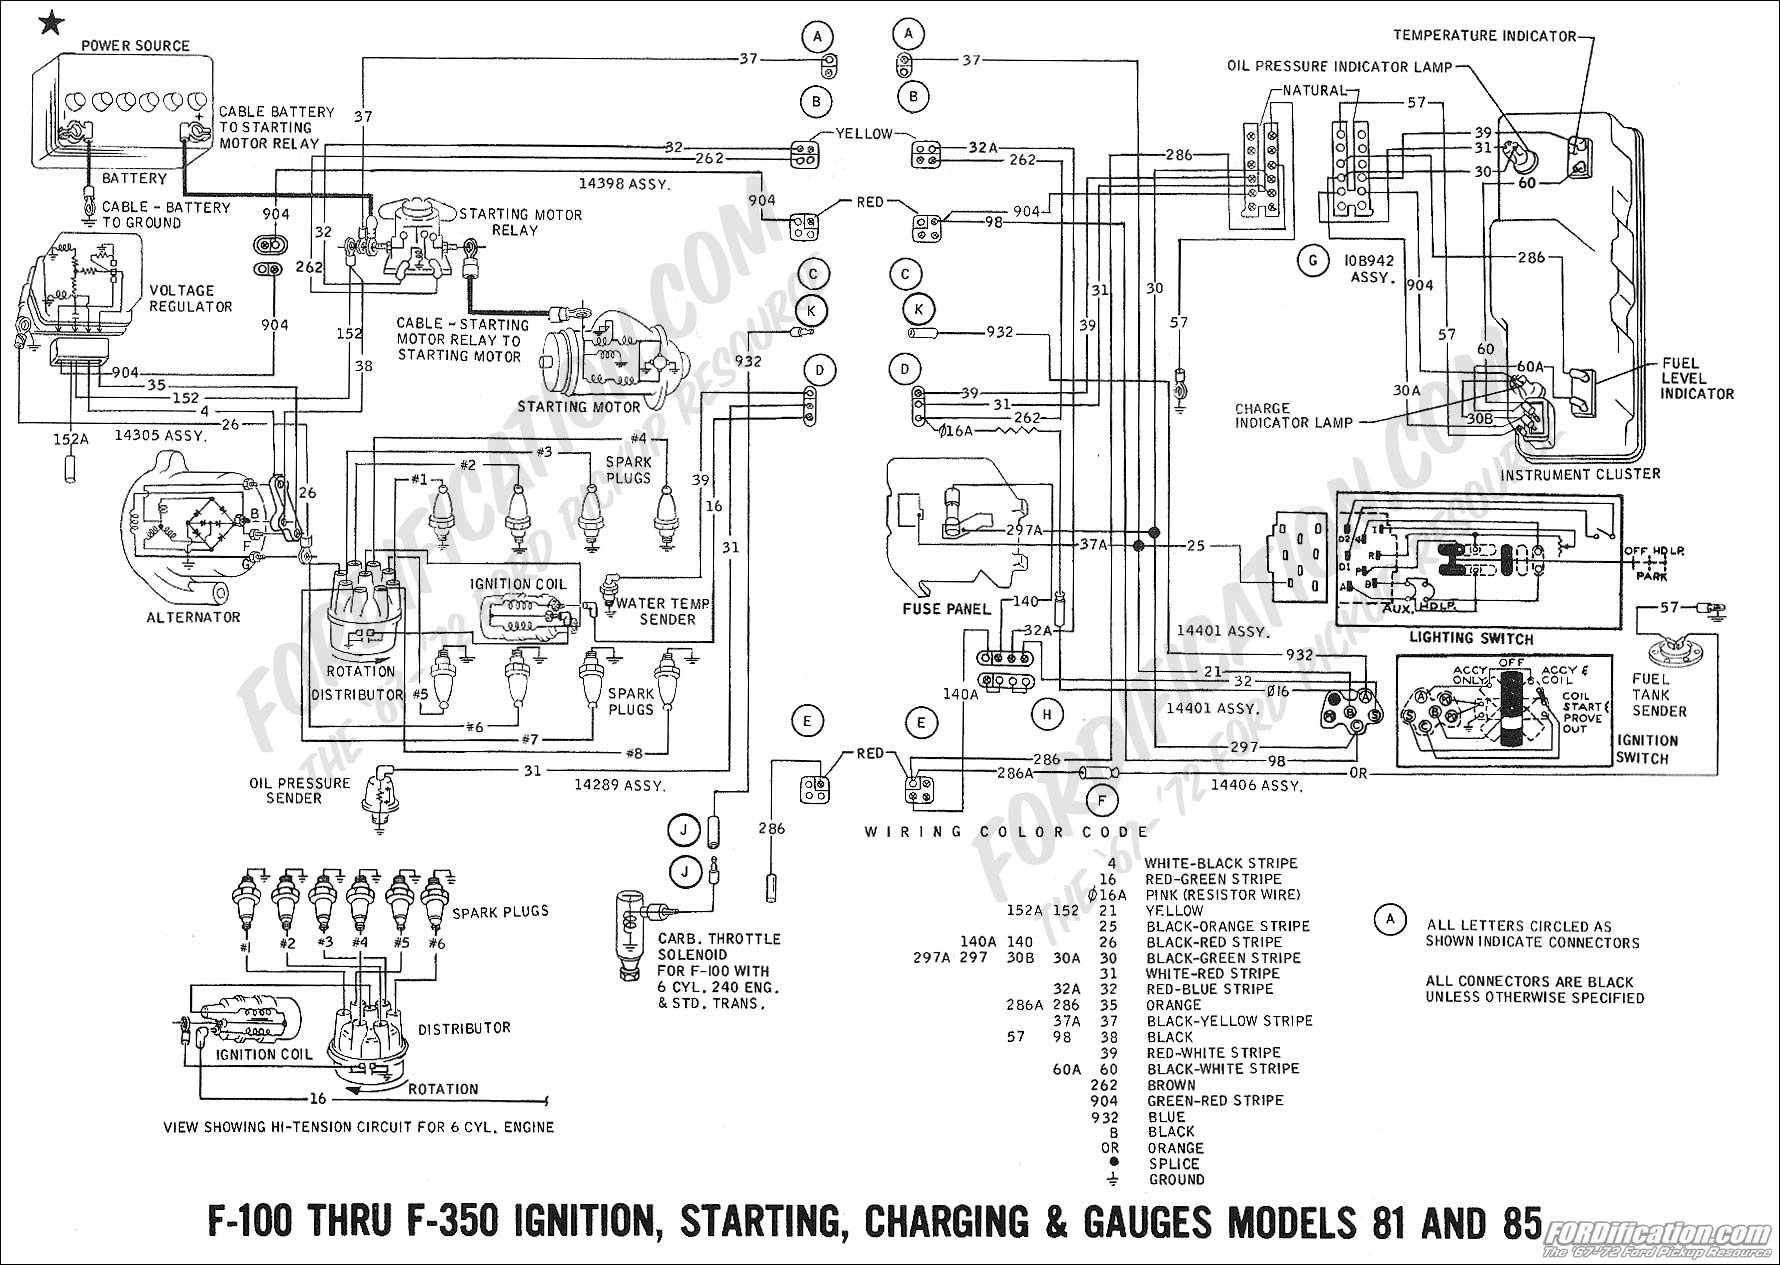 Ford Lt9000 Starter Wiring Schematics Trusted Diagram Online 351 Harness Diagrams Simple L9000 Schematic